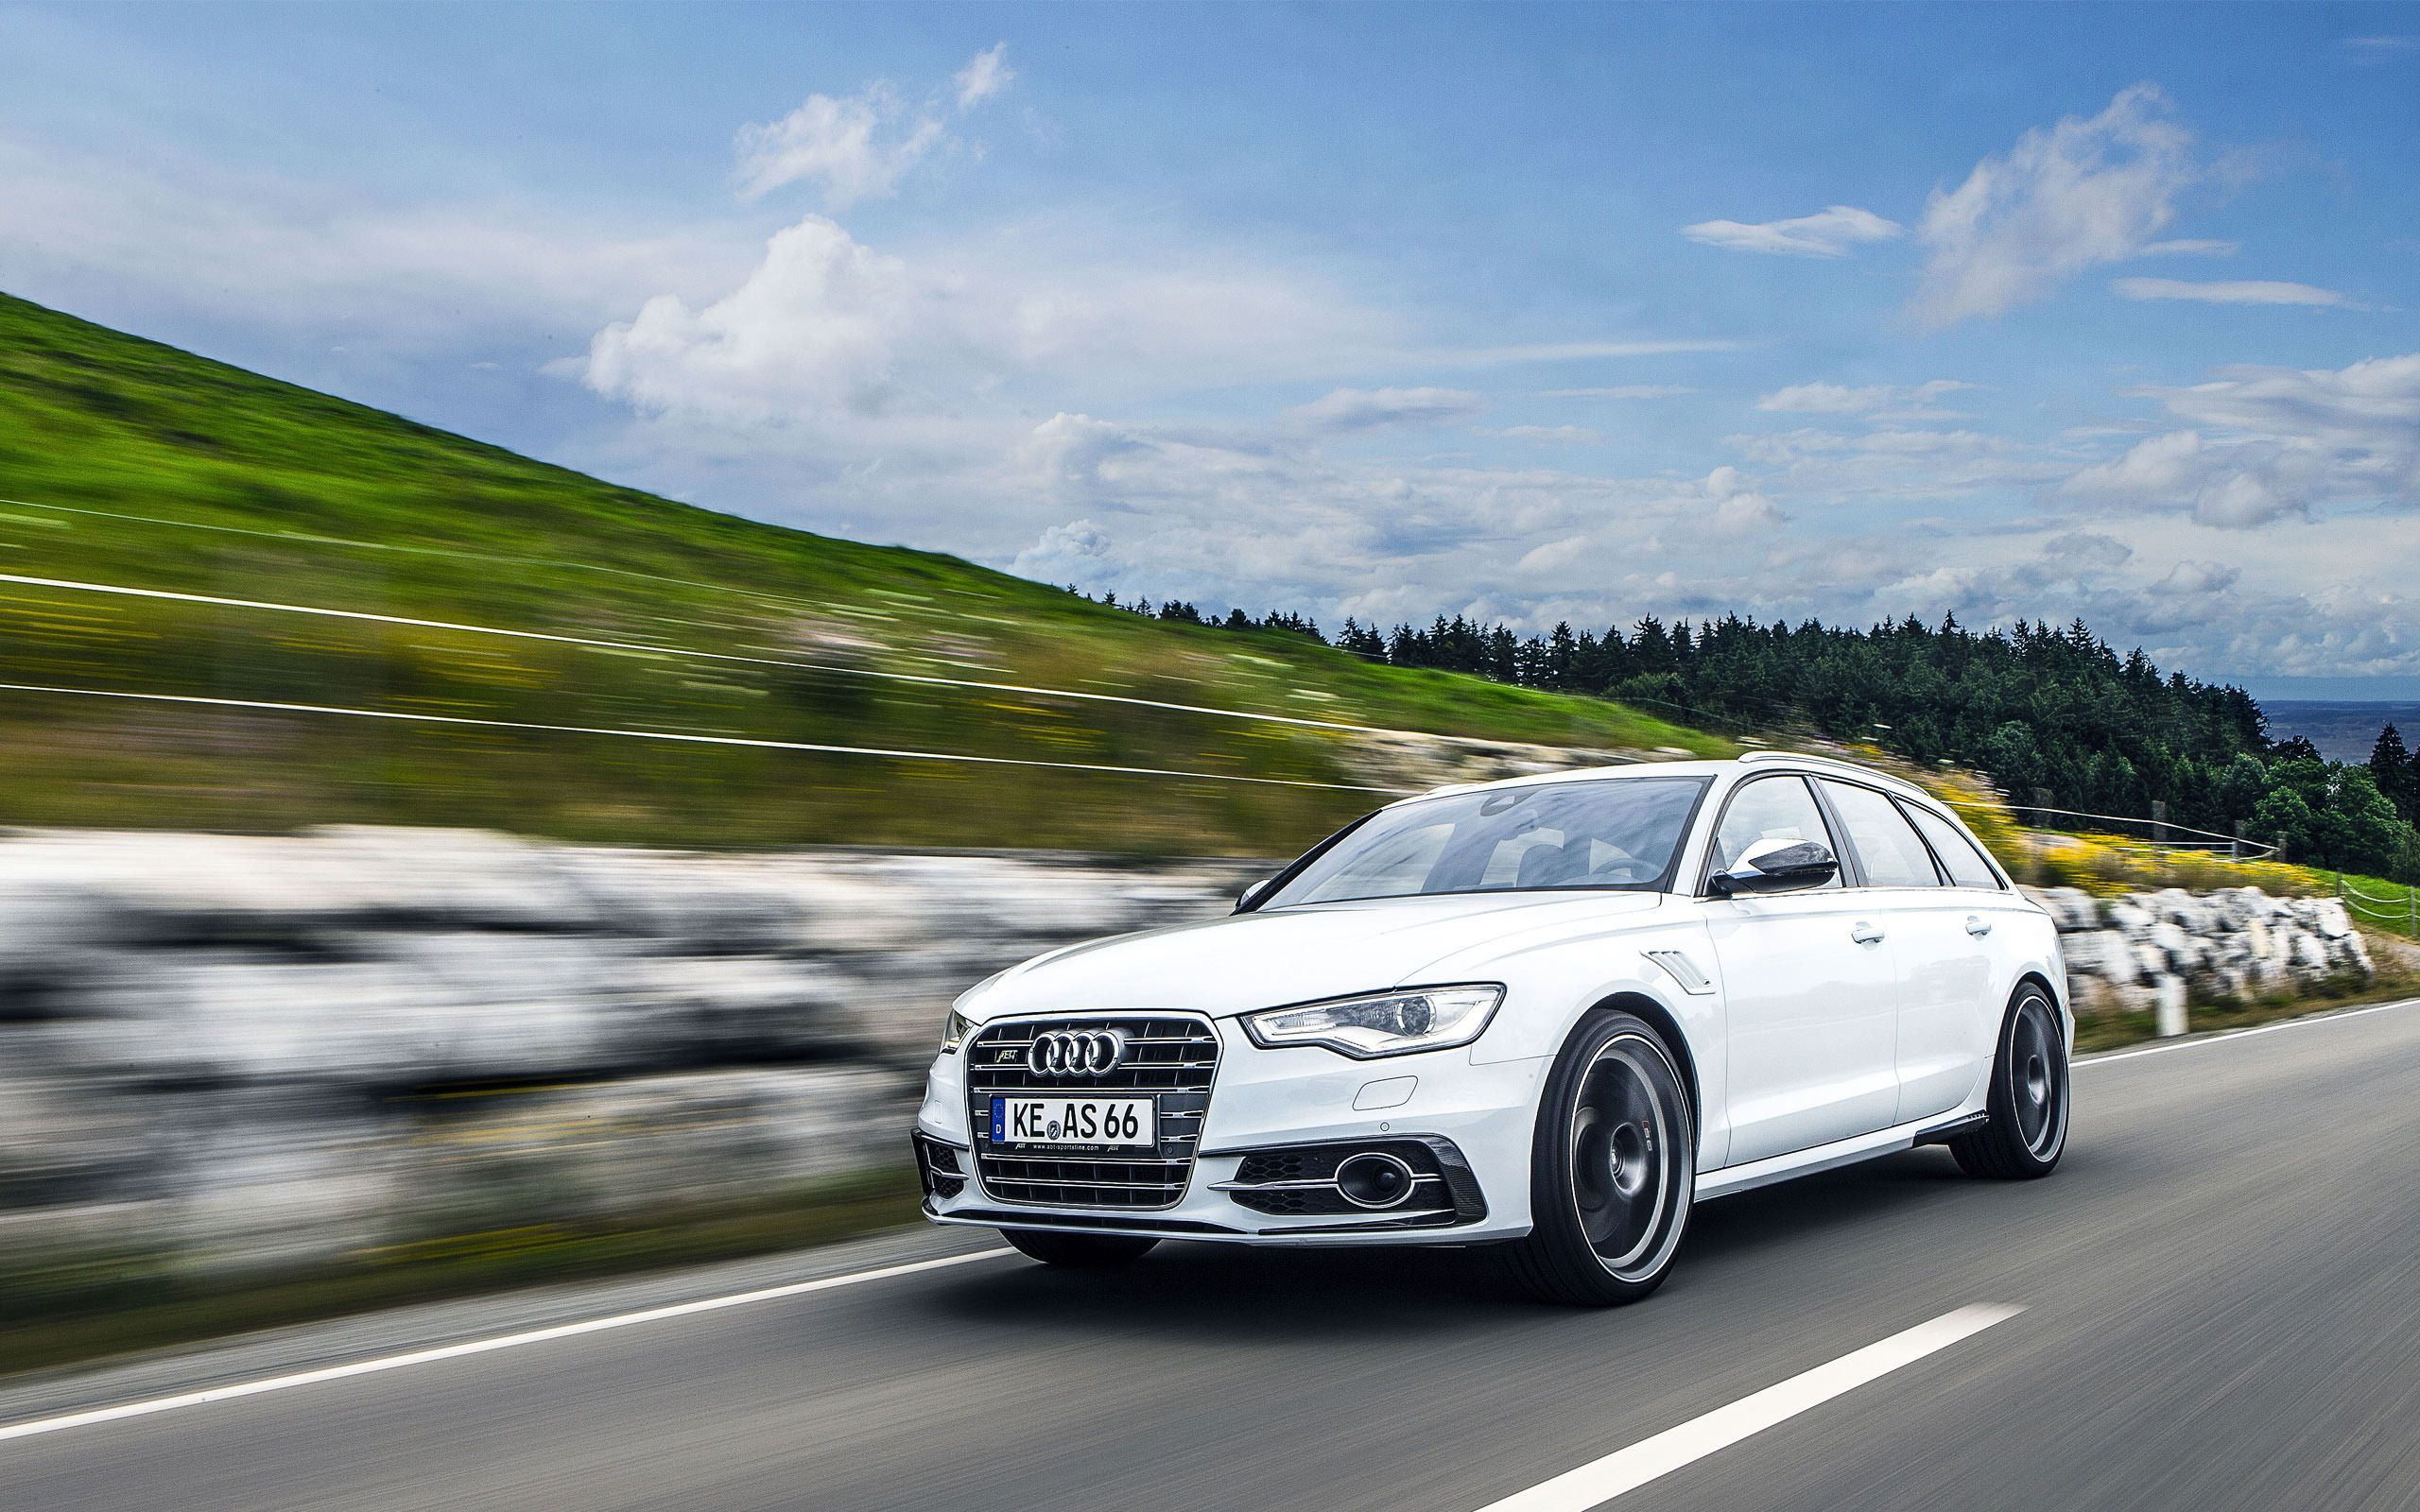 Pin by iPhone Wallpapers on HDWallpaperFX   Audi cars, Audi